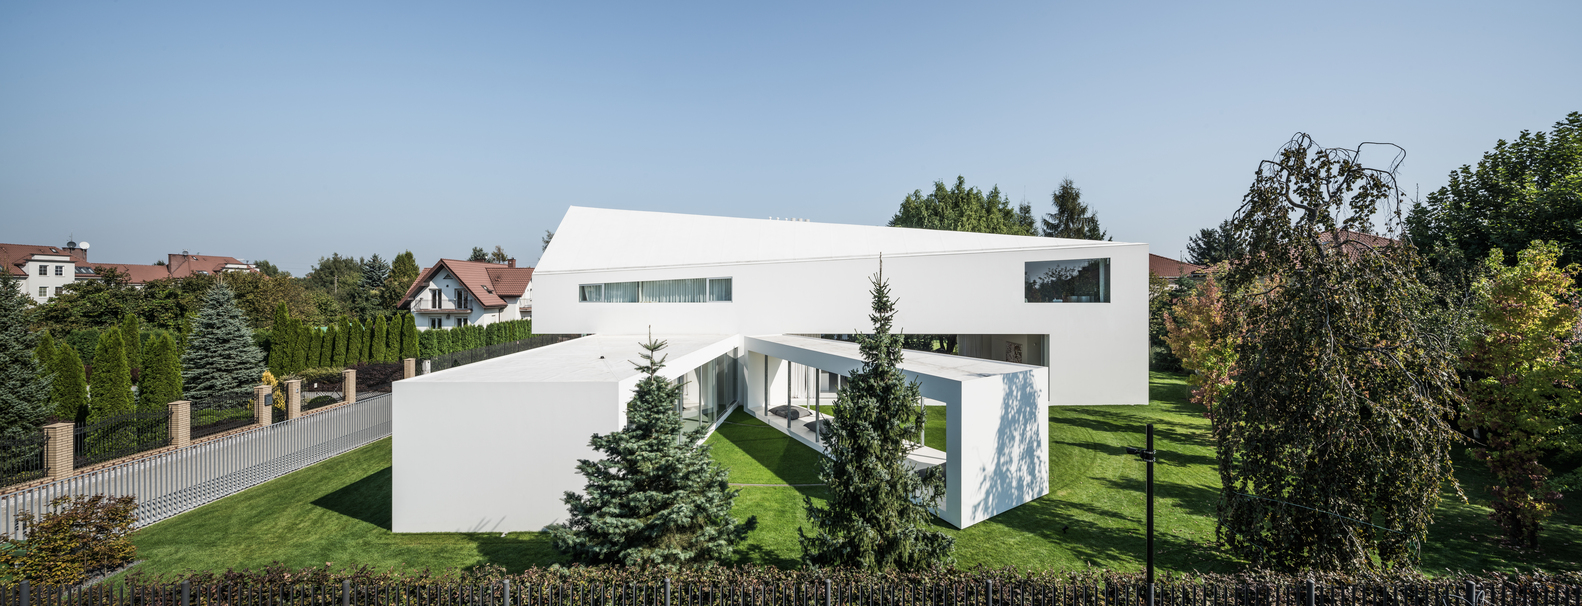 The house was designed to enjoy shade during summer and to let more sunlight in during the winter